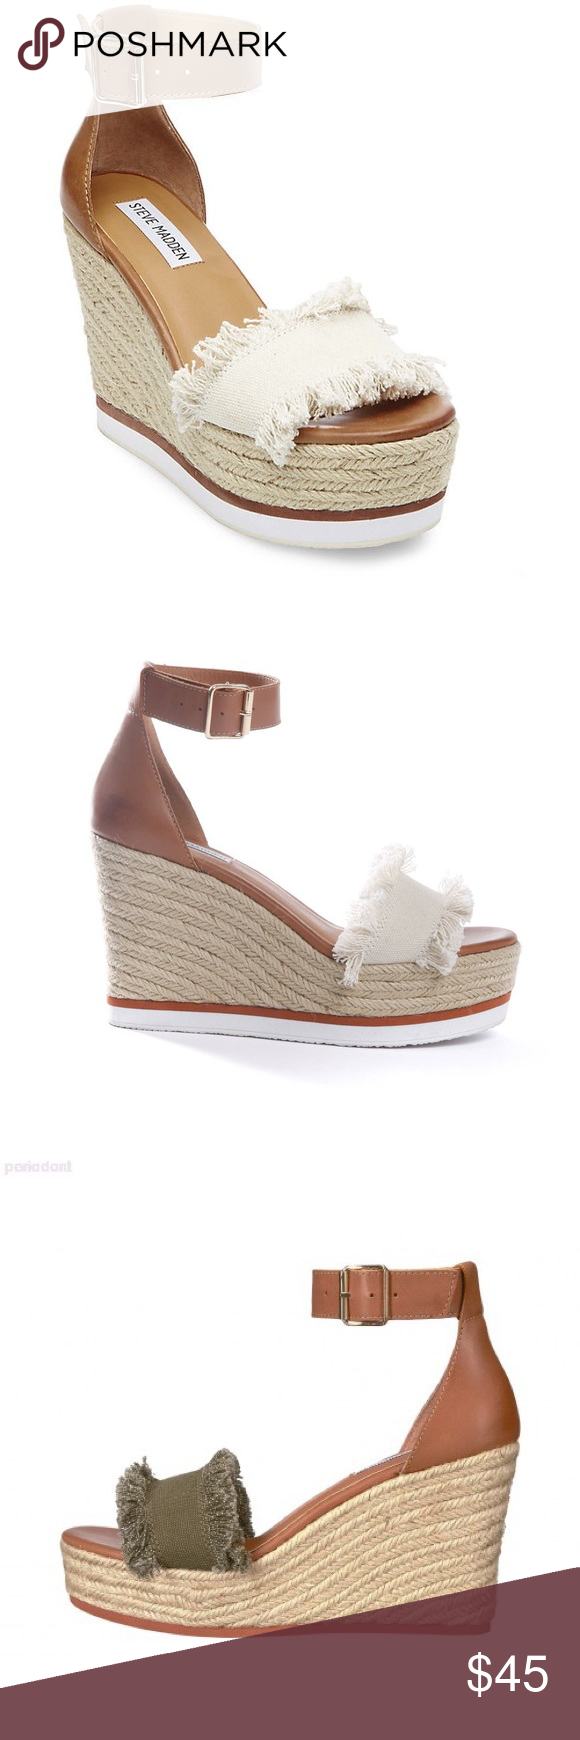 468e2cf91ab Steve Madden Valley Wedge Sandal Olive Beige Price As Shown Not Open To Any  Offers Steve Madden Shoes Wedges